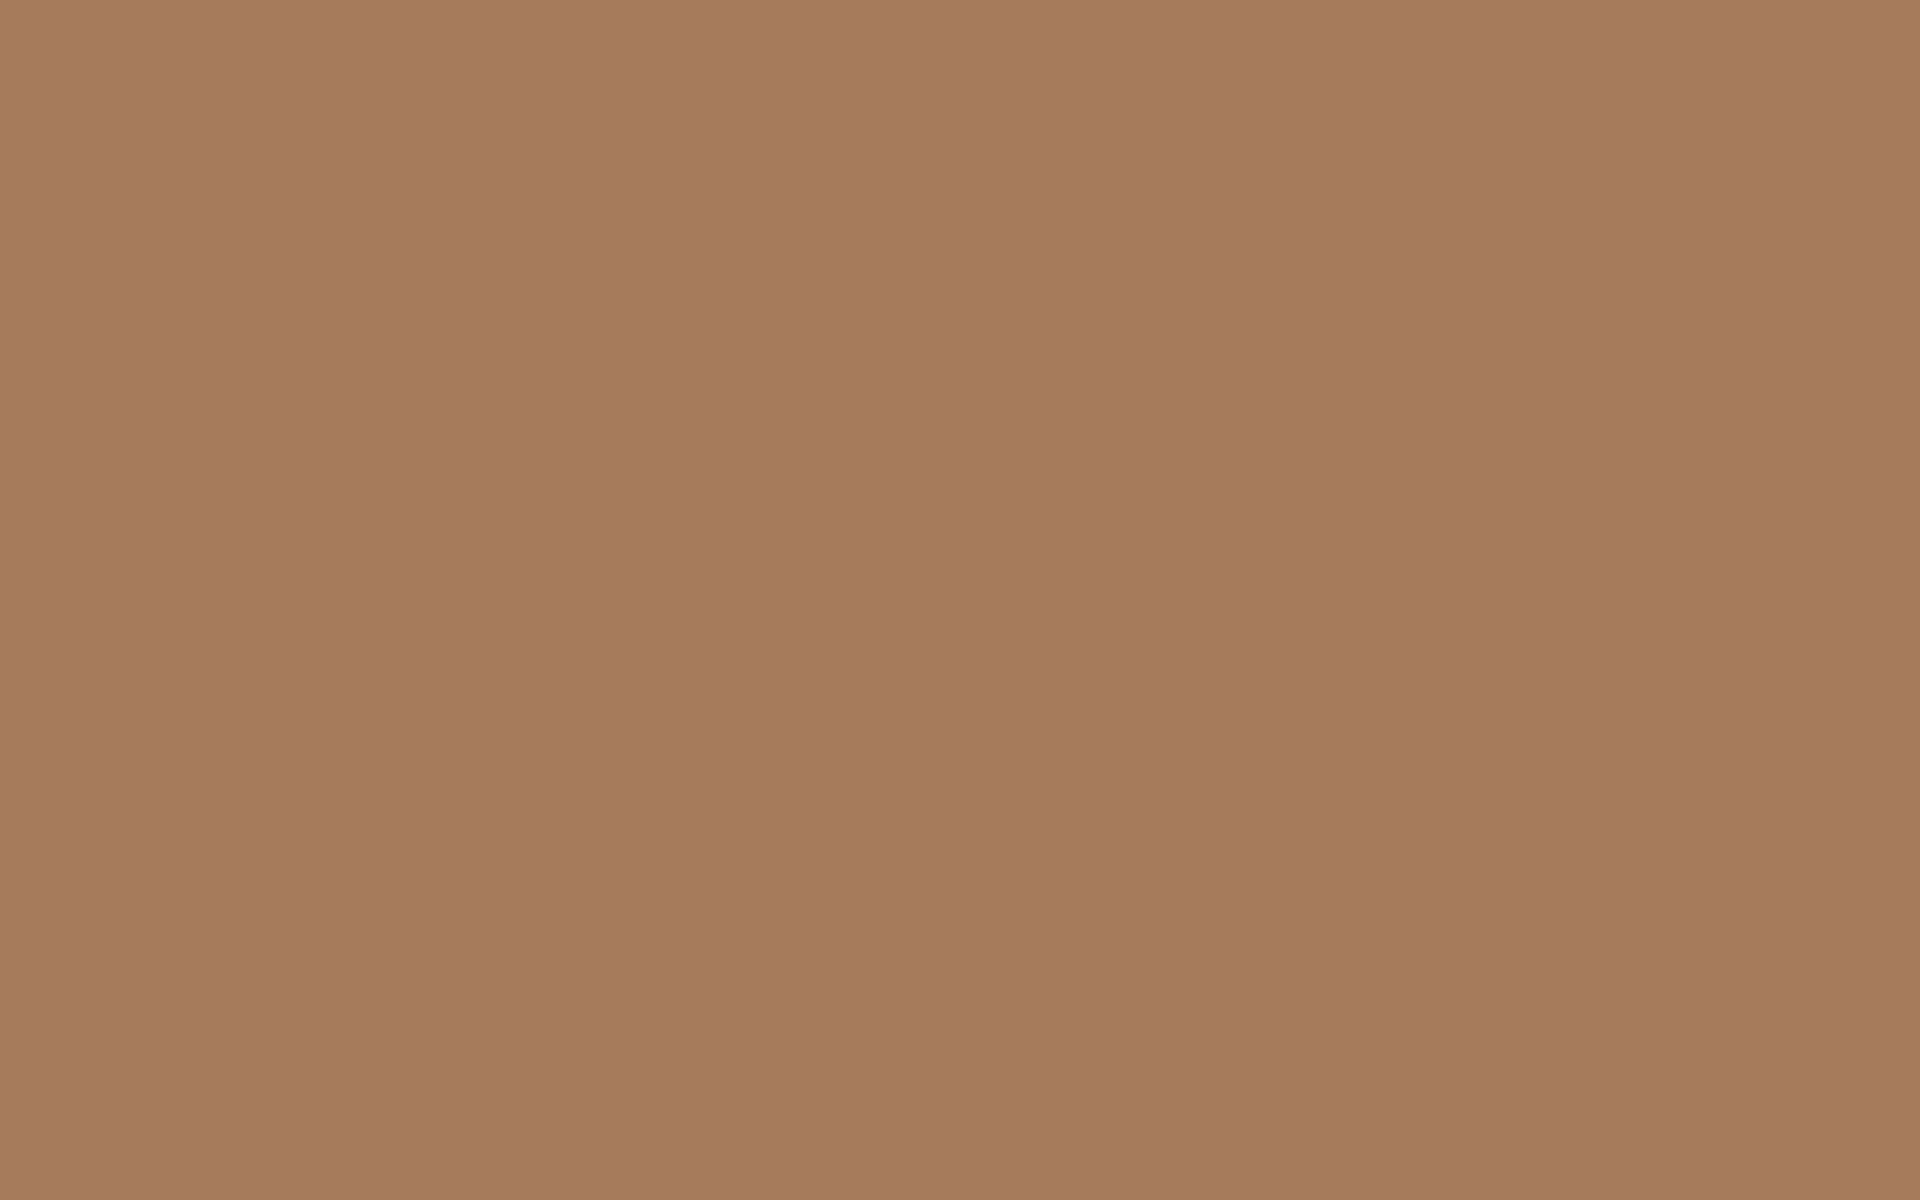 1920x1200 Tuscan Tan Solid Color Background